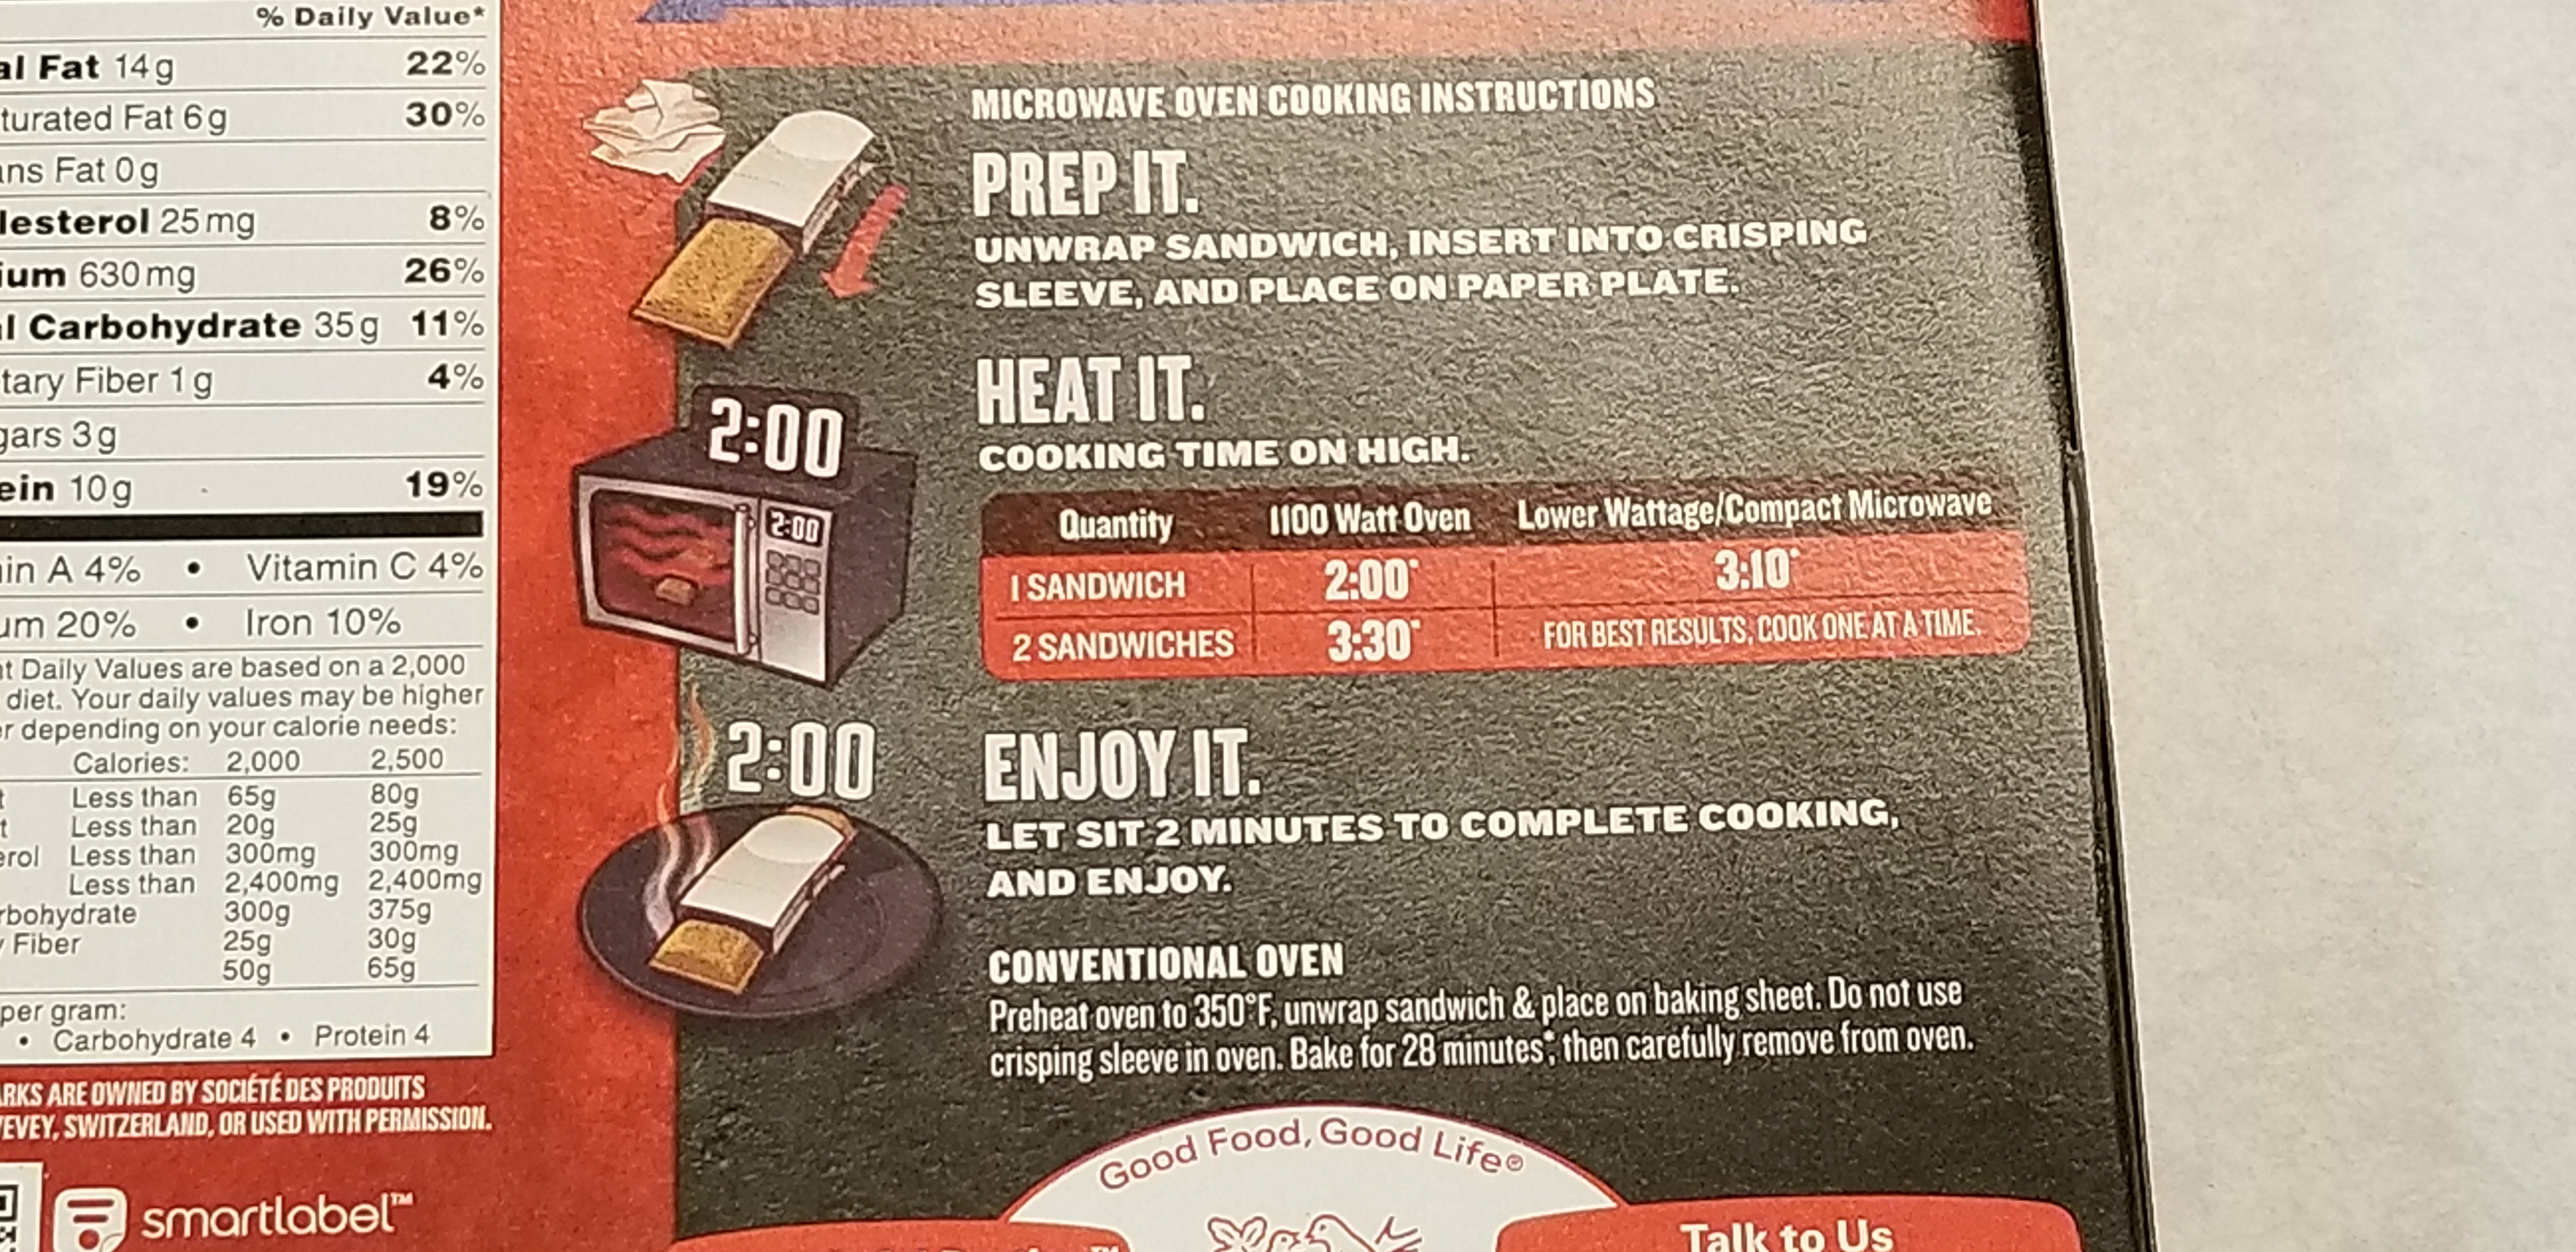 Hot Pockets Premium Pepperoni Pizza Cooking Instructions